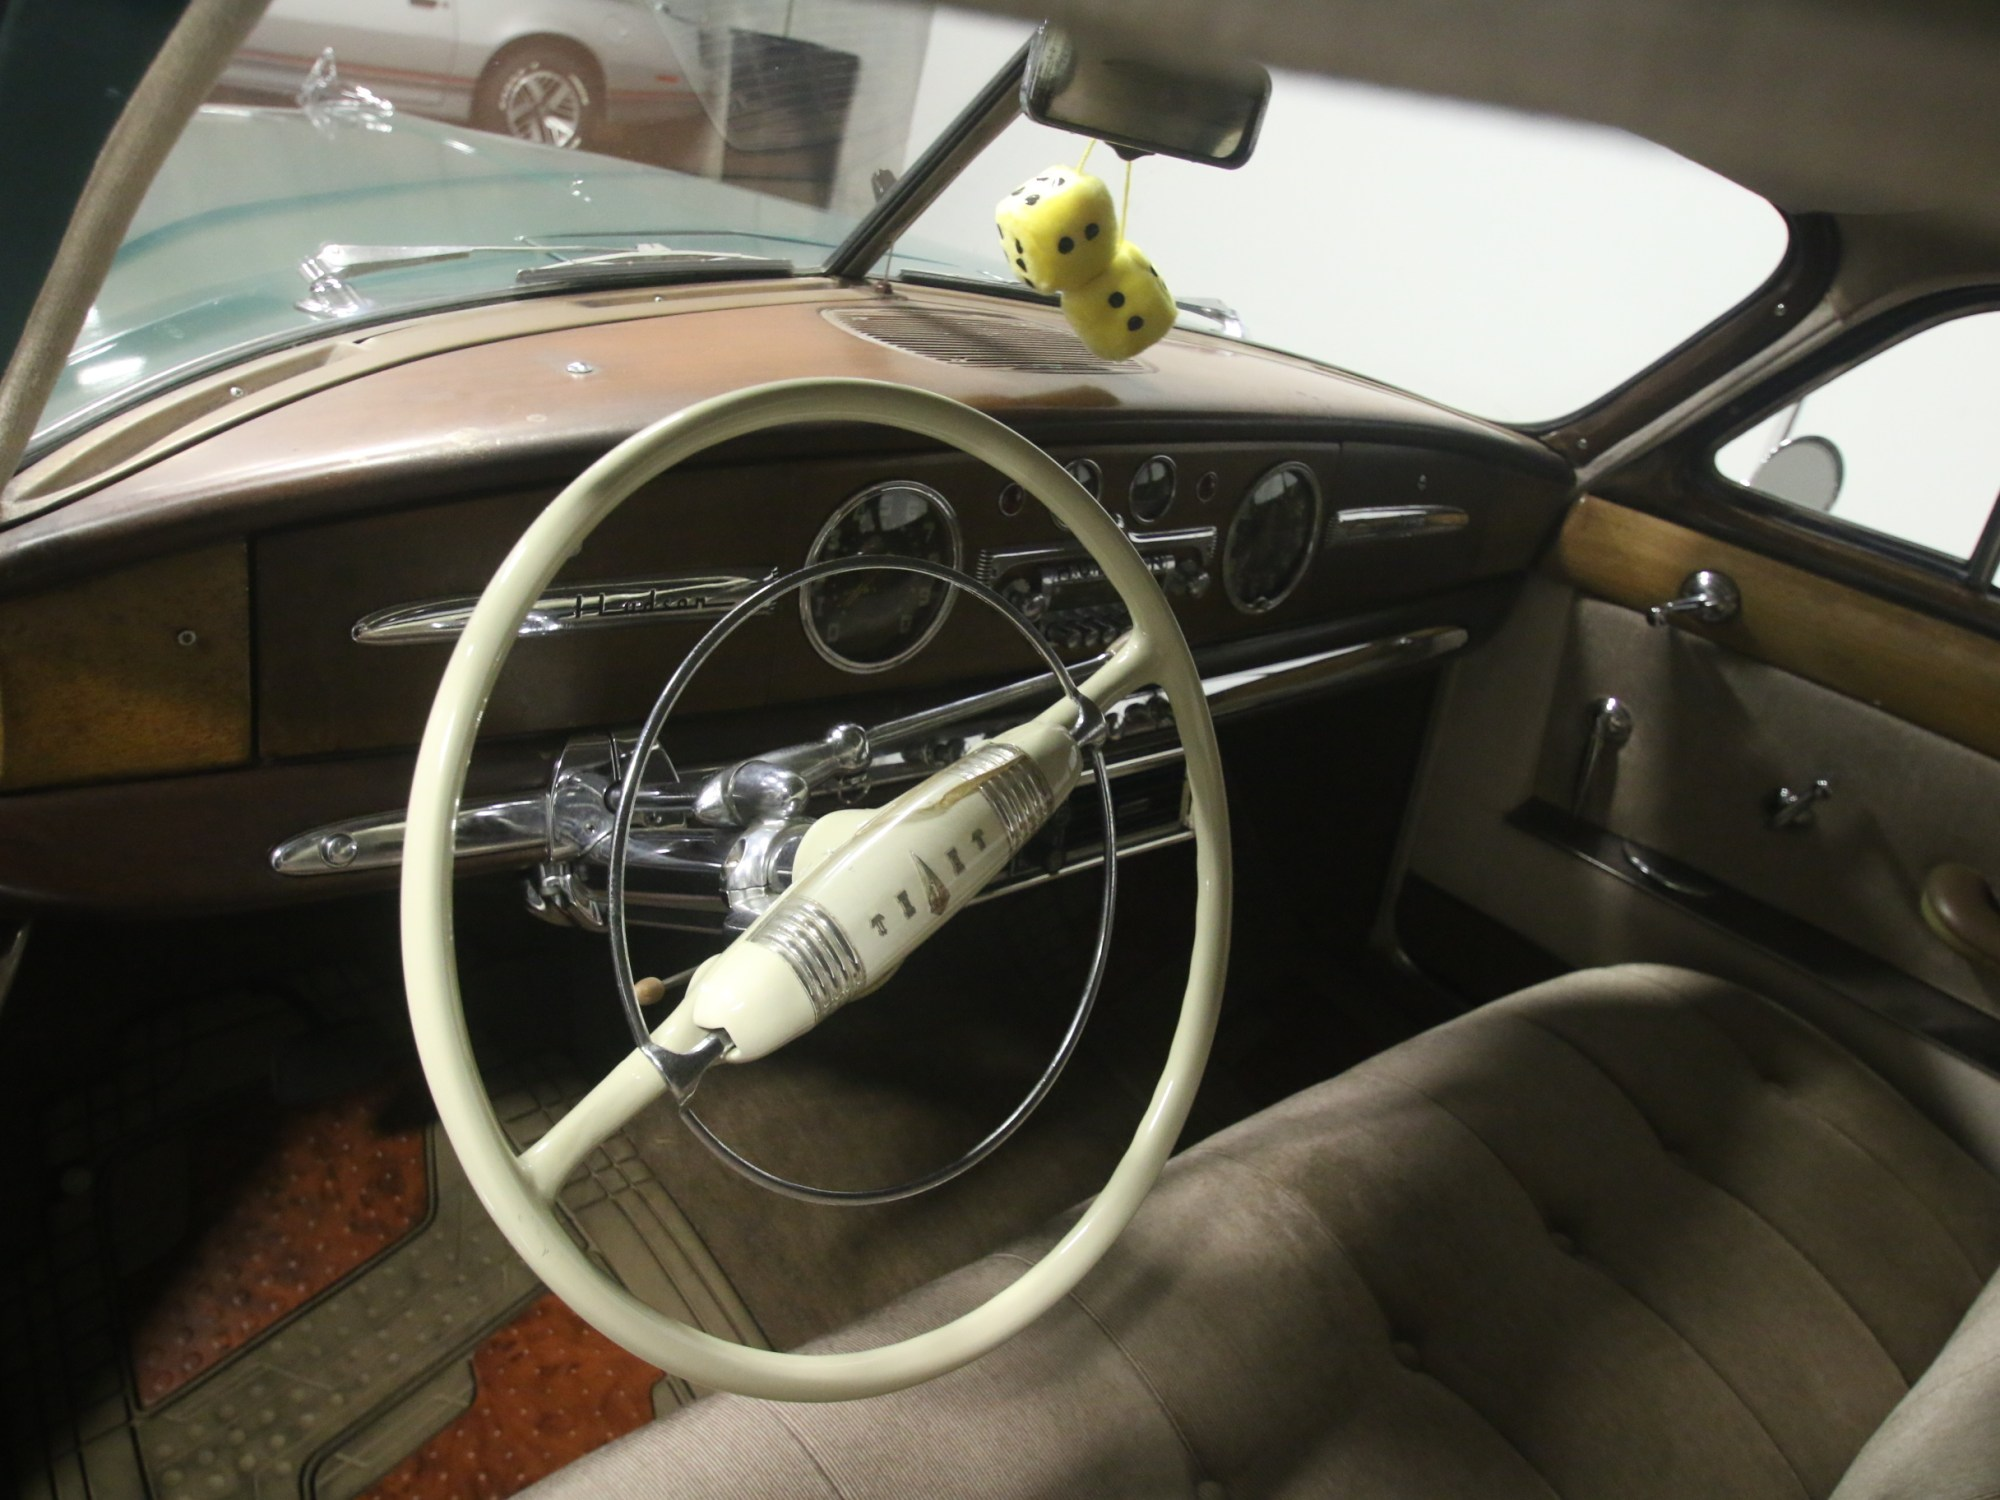 hight resolution of  1941 cadillac steering wheel best cars 2018 on 1964 cadillac wiring diagram 1959 cadillac